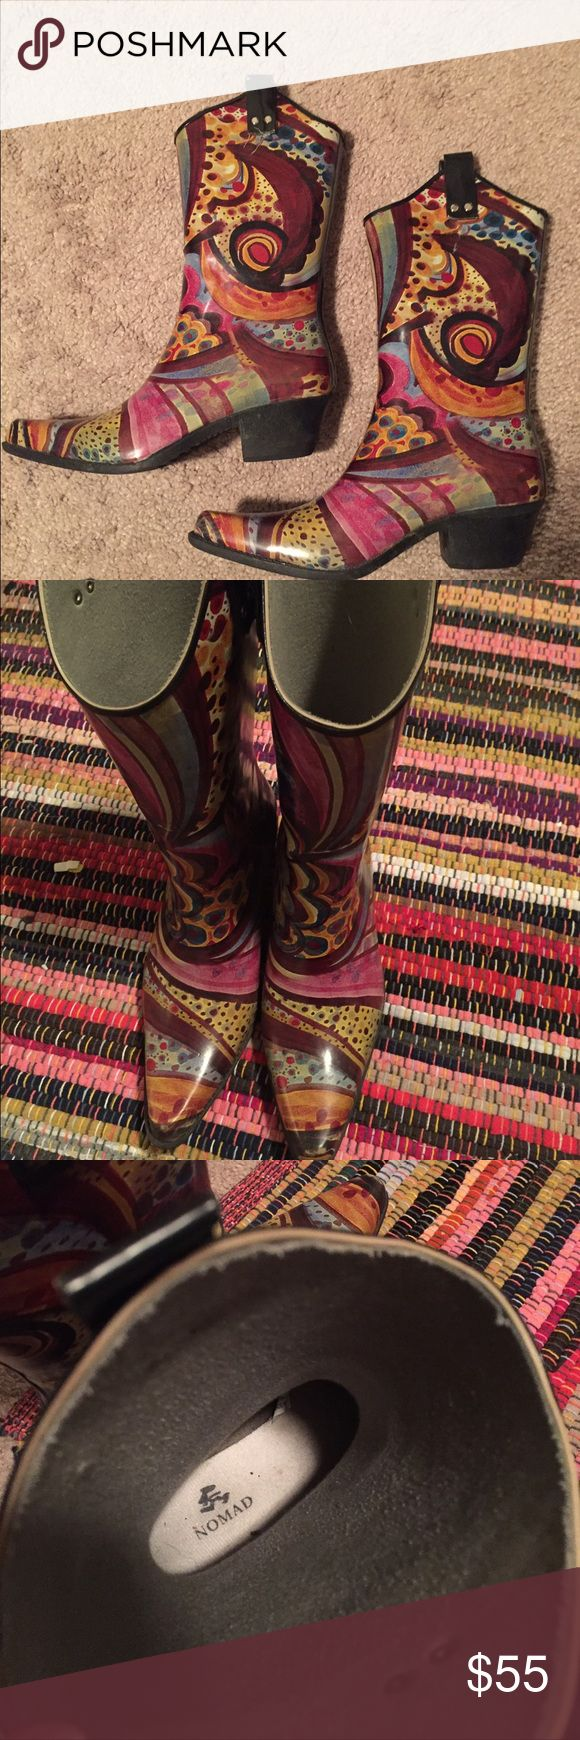 Nomad Heeled Cowboy Rain Boots Size 9 These swirly patterned heeled rainboots could also double as fashionable colorful cowboy boots! Nomad Shoes Winter & Rain Boots